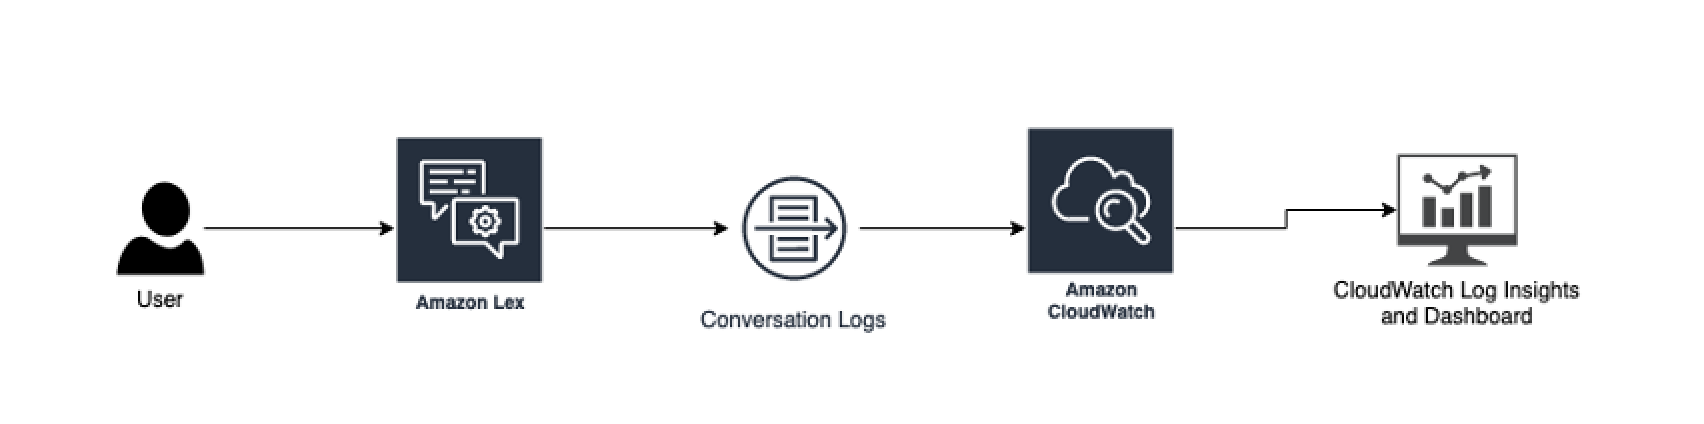 Solution Architecture describing Analysis of Conversation Logs